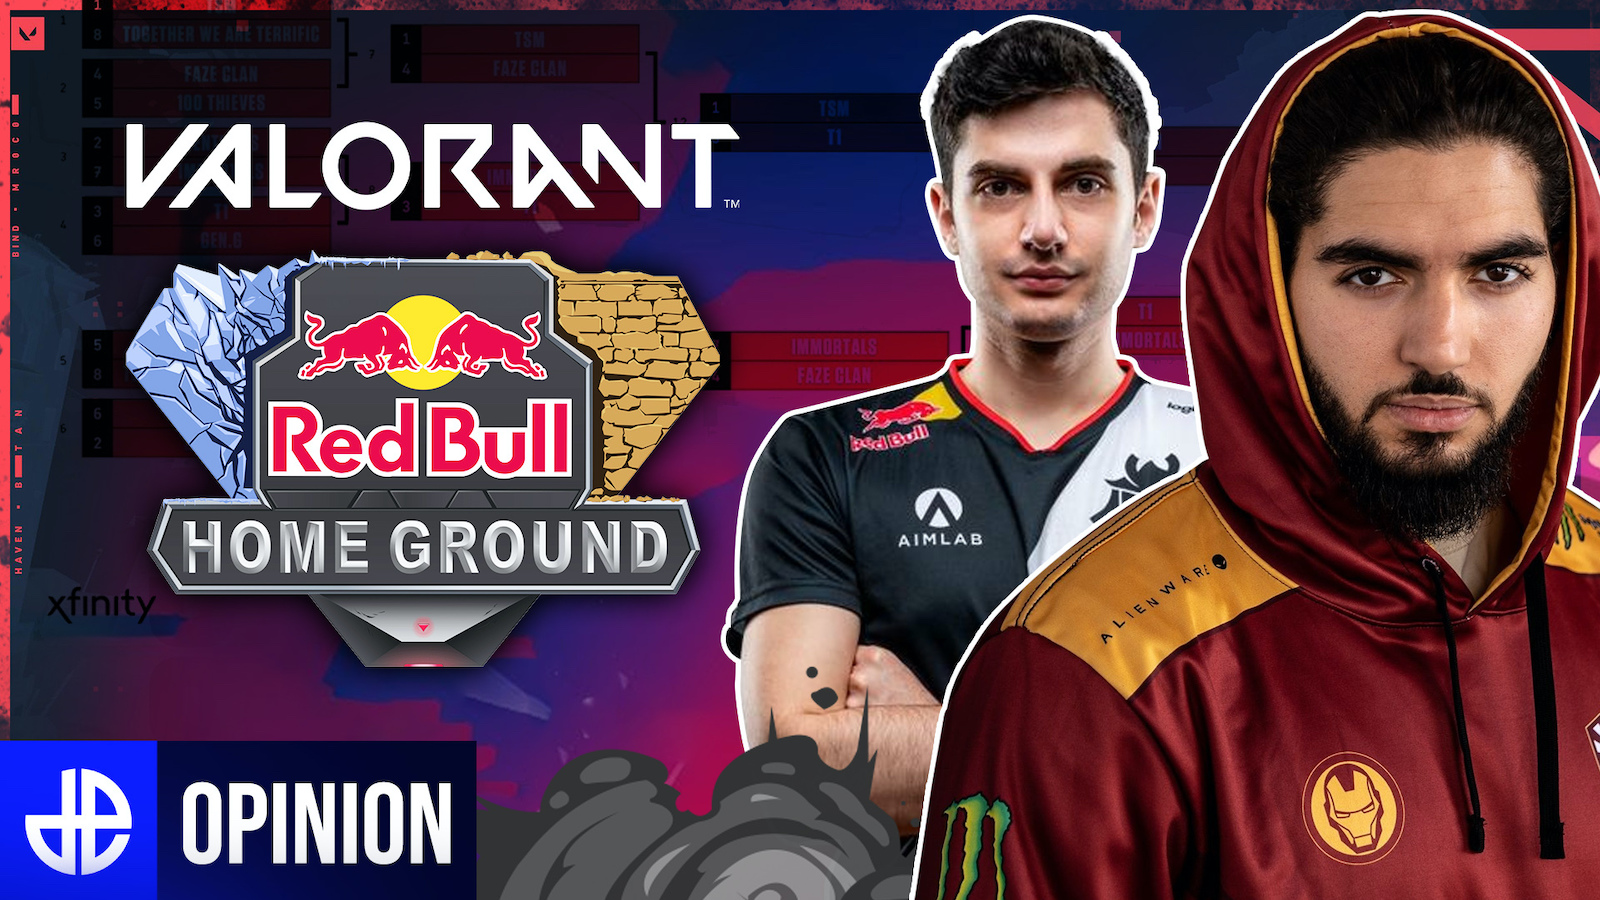 Valorant Red Bull Home Ground tournament opinion piece feature